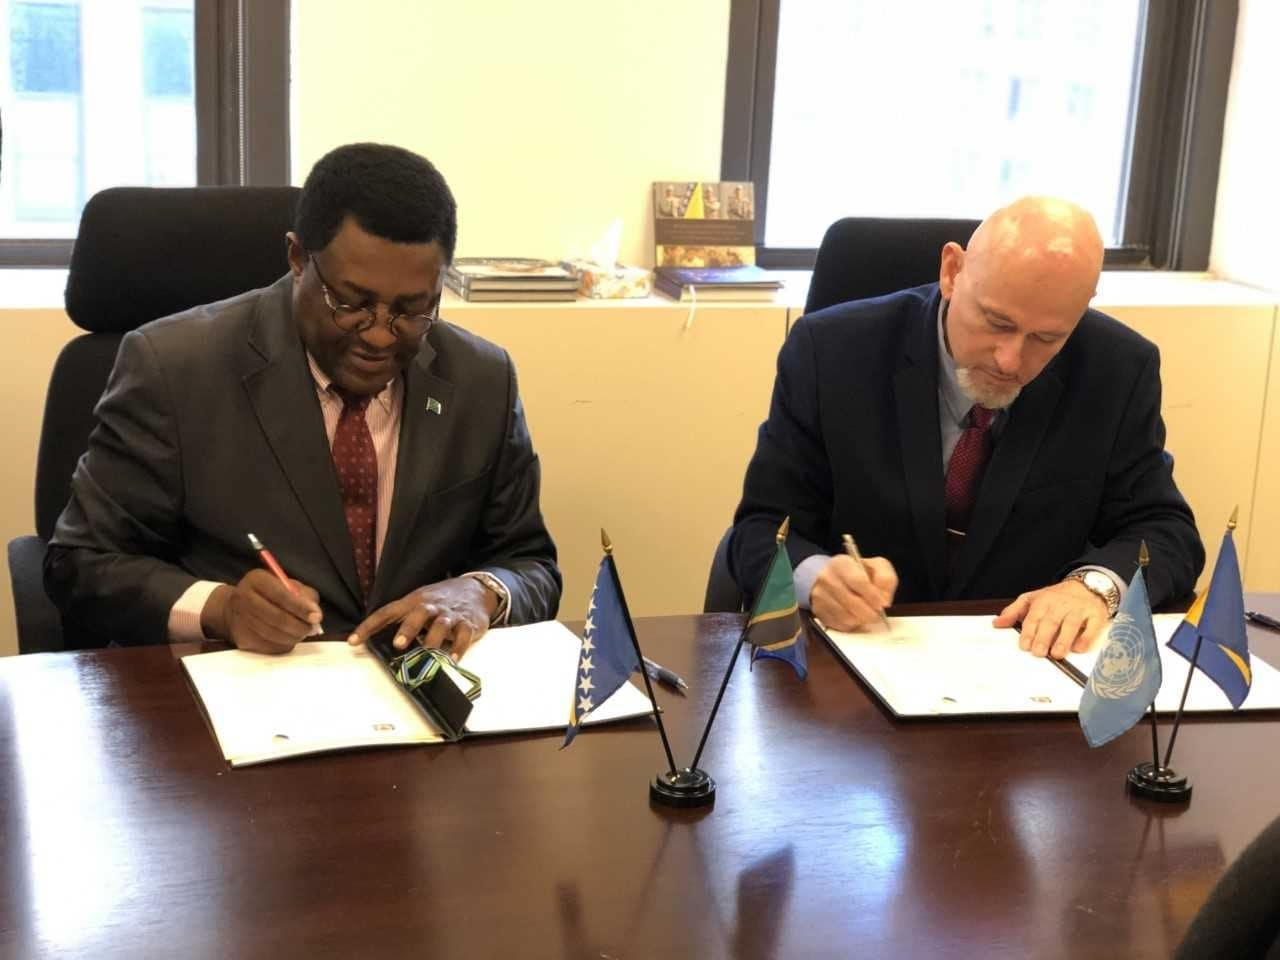 Bosnia and Herzegovina established diplomatic relations with Tanzania